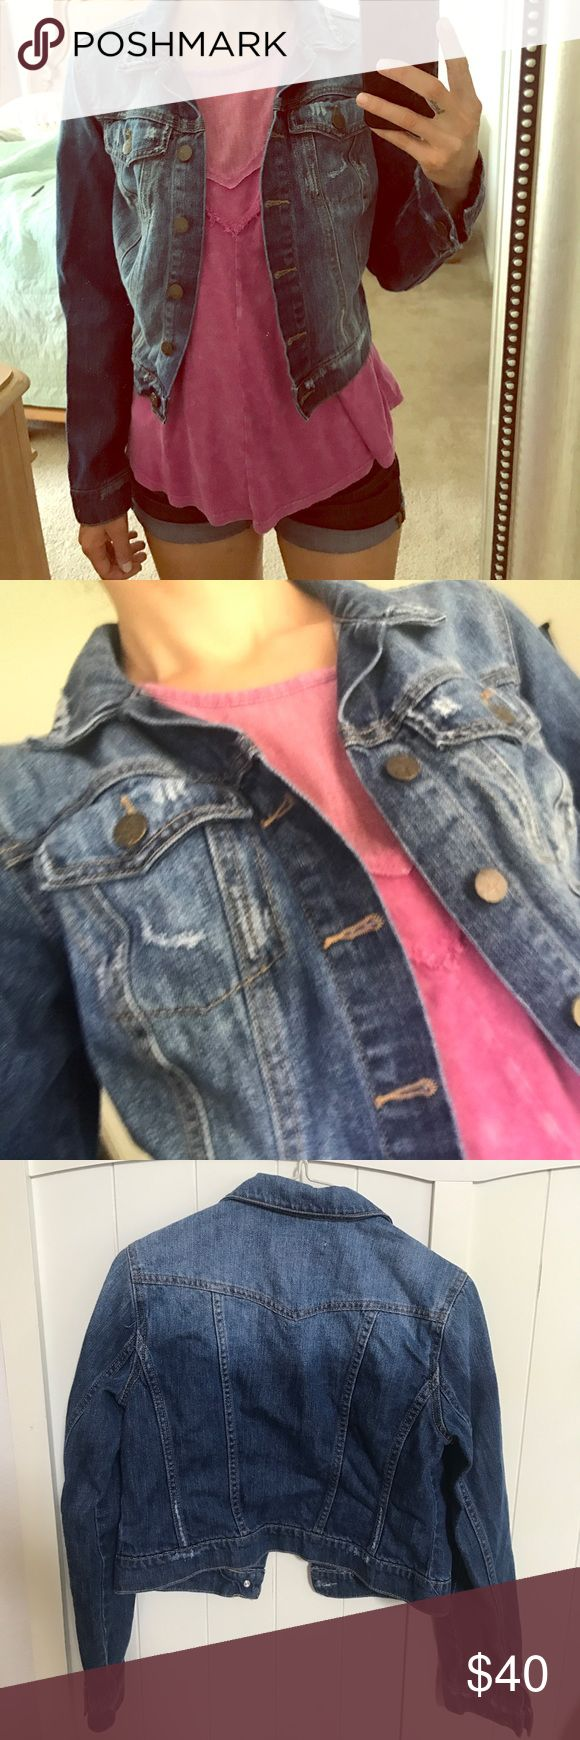 Jessica Simpson Jean Jacket Distressed look, worn once, 100% cotton and lightweight. Junior size small. Jackets & Coats Jean Jackets